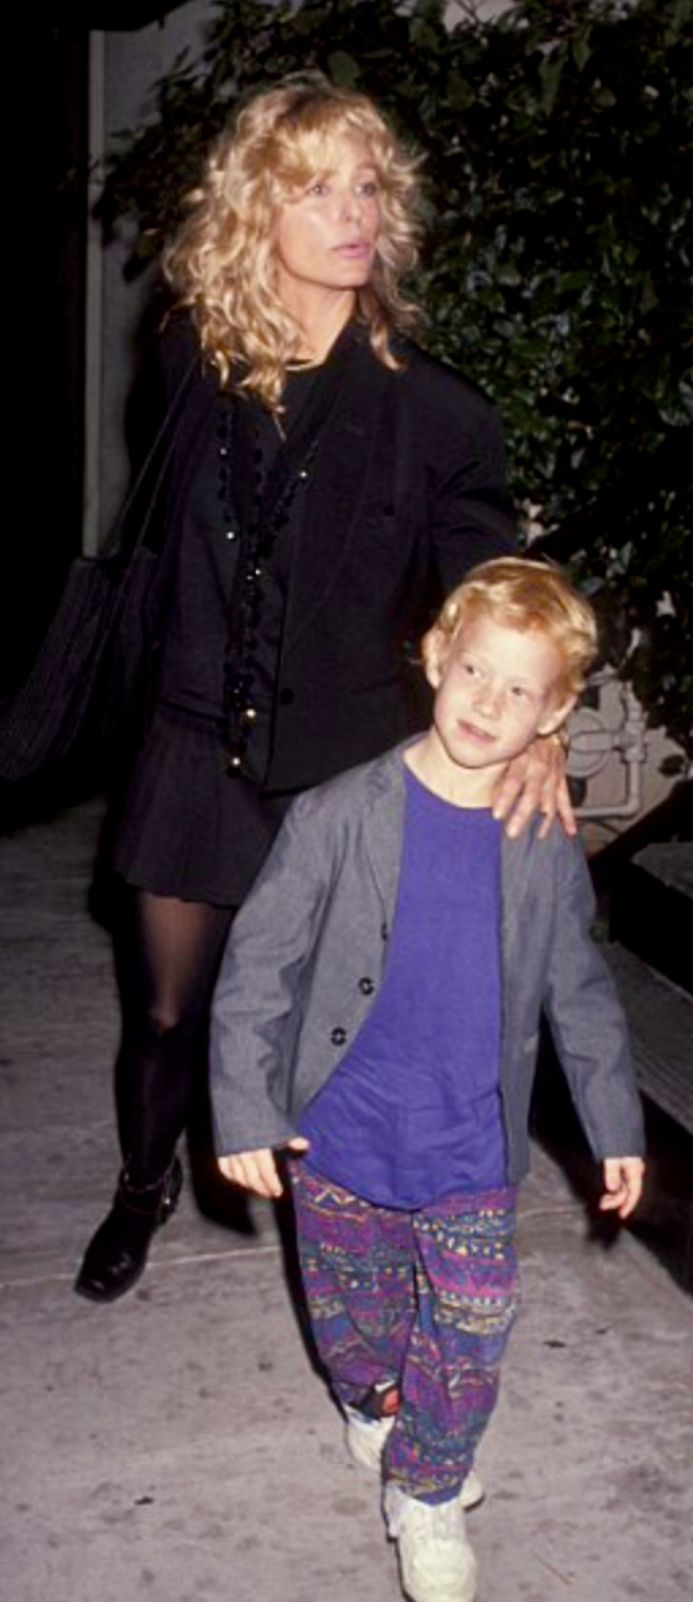 Farrah Fawcett with her son Redmond